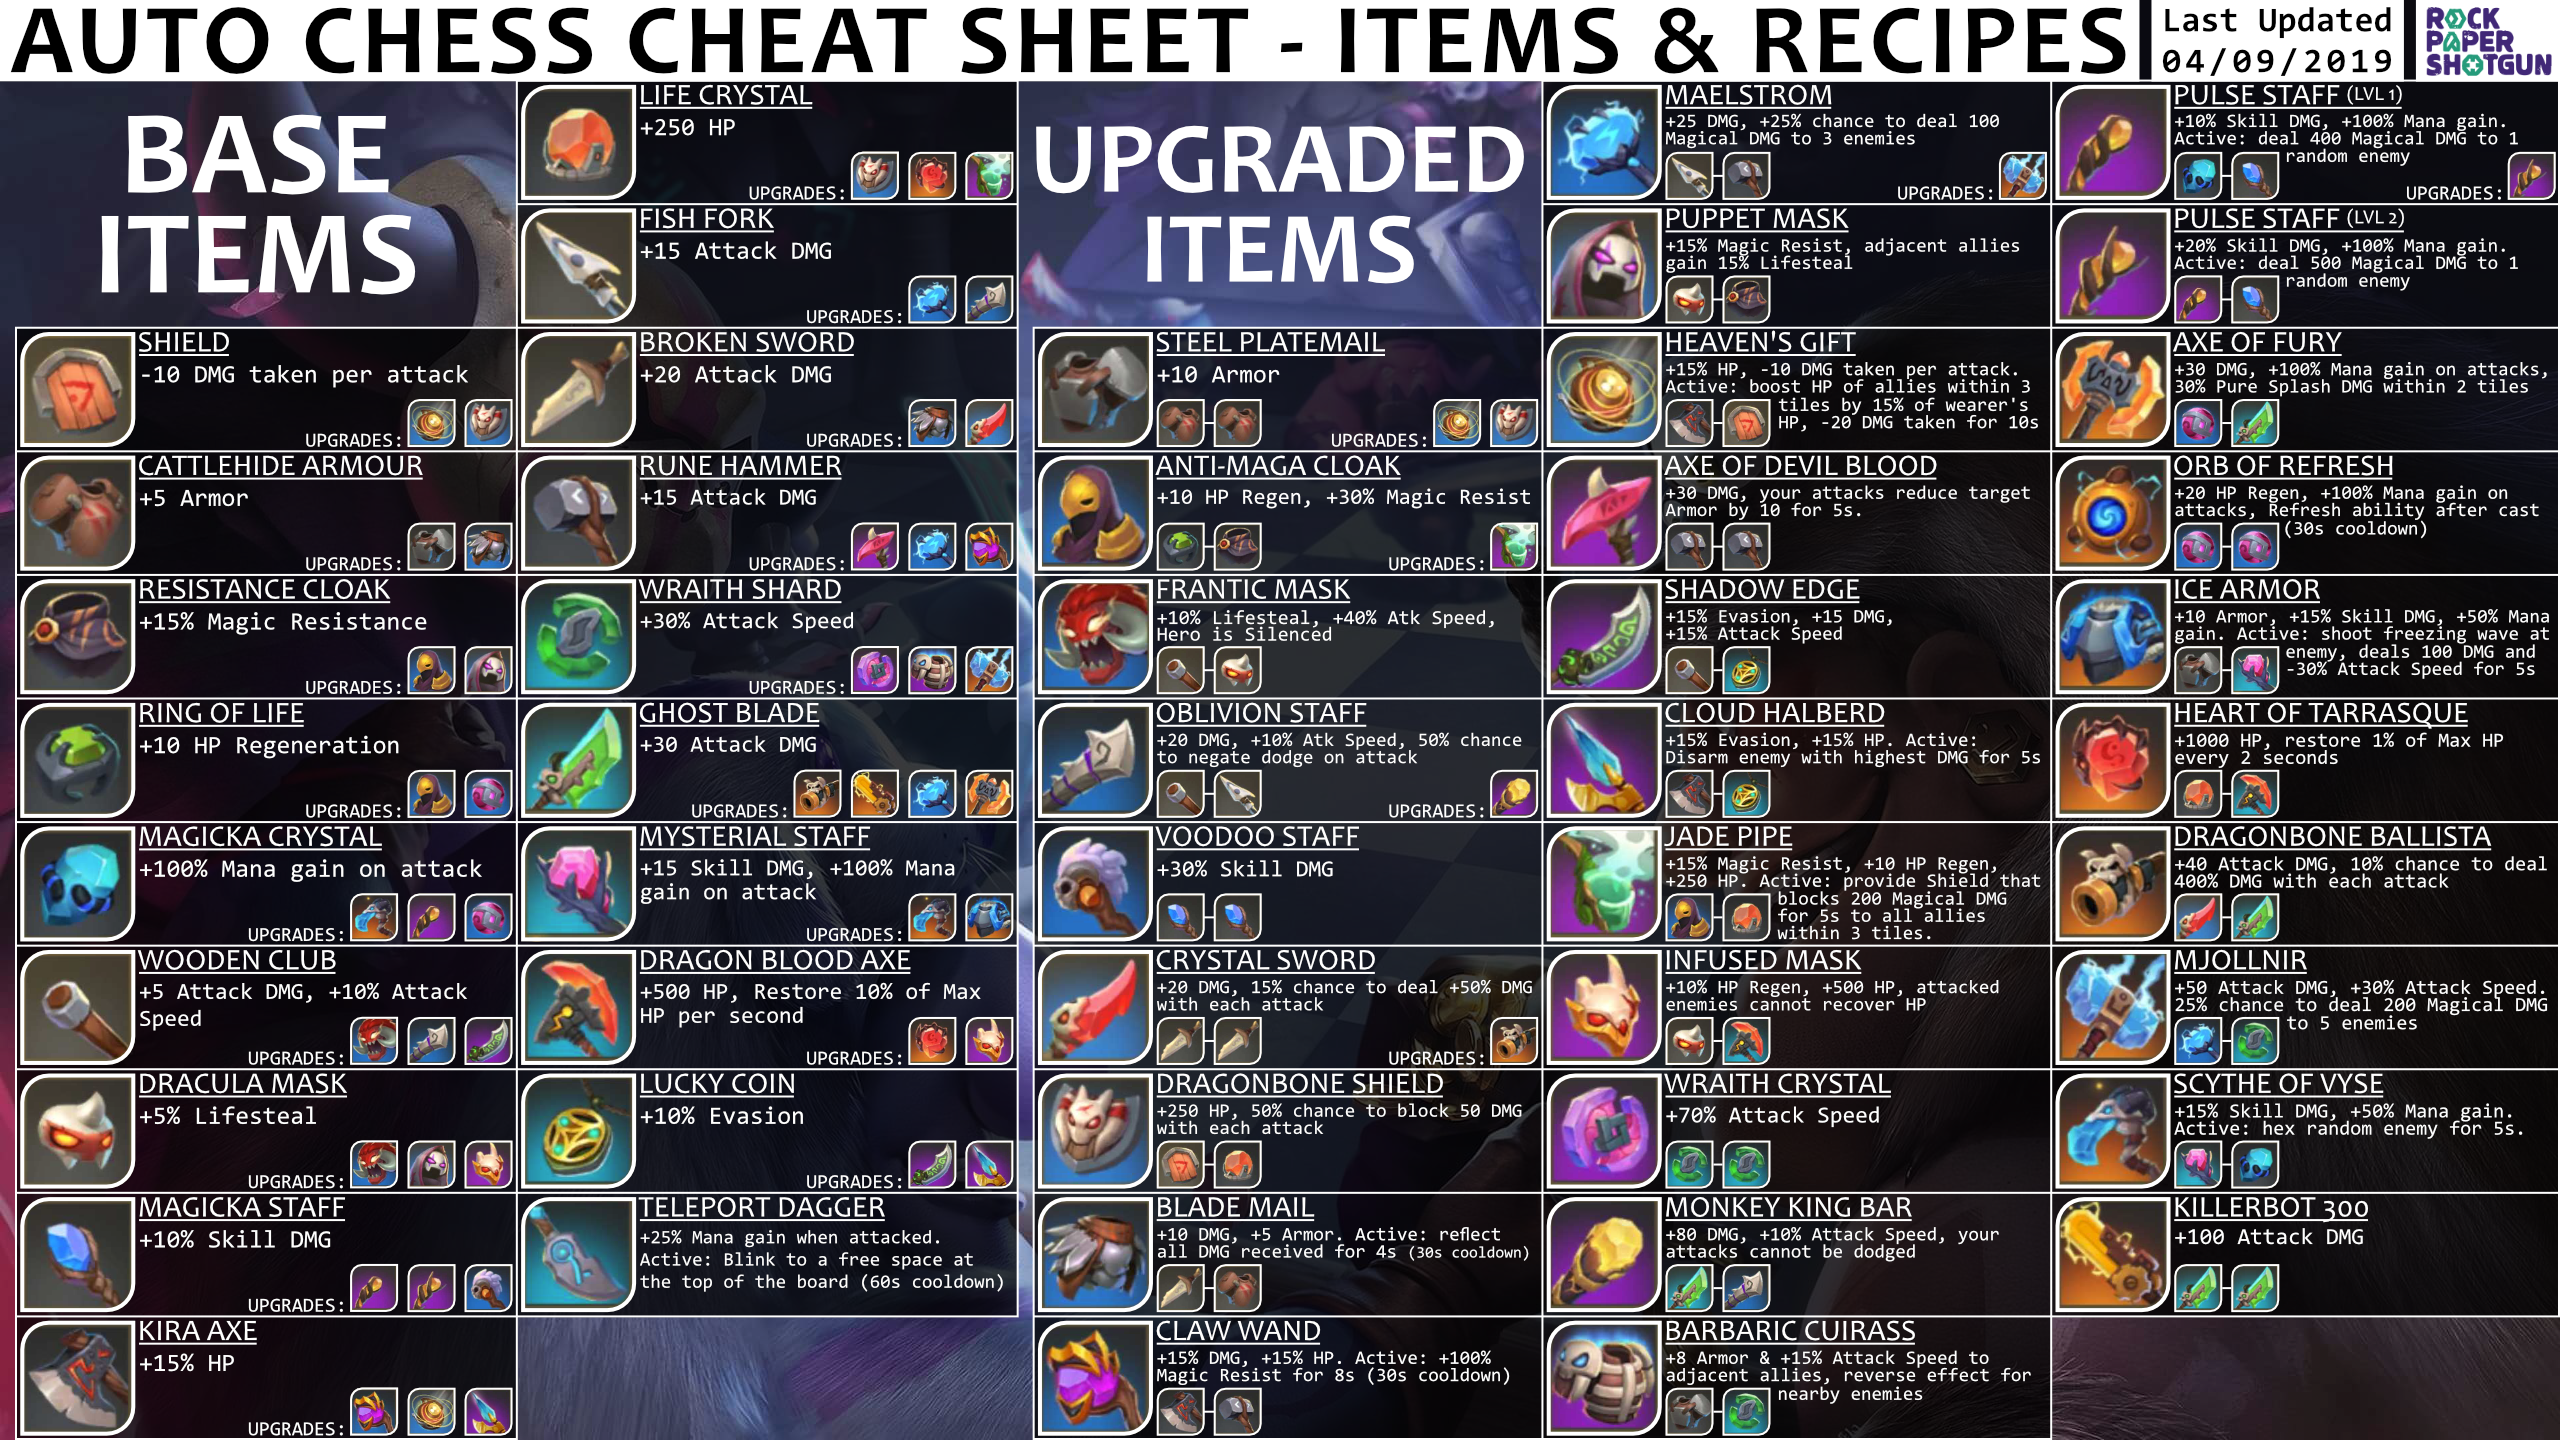 Auto Chess cheat sheet - recipes & items cheat sheet (4 Sept)